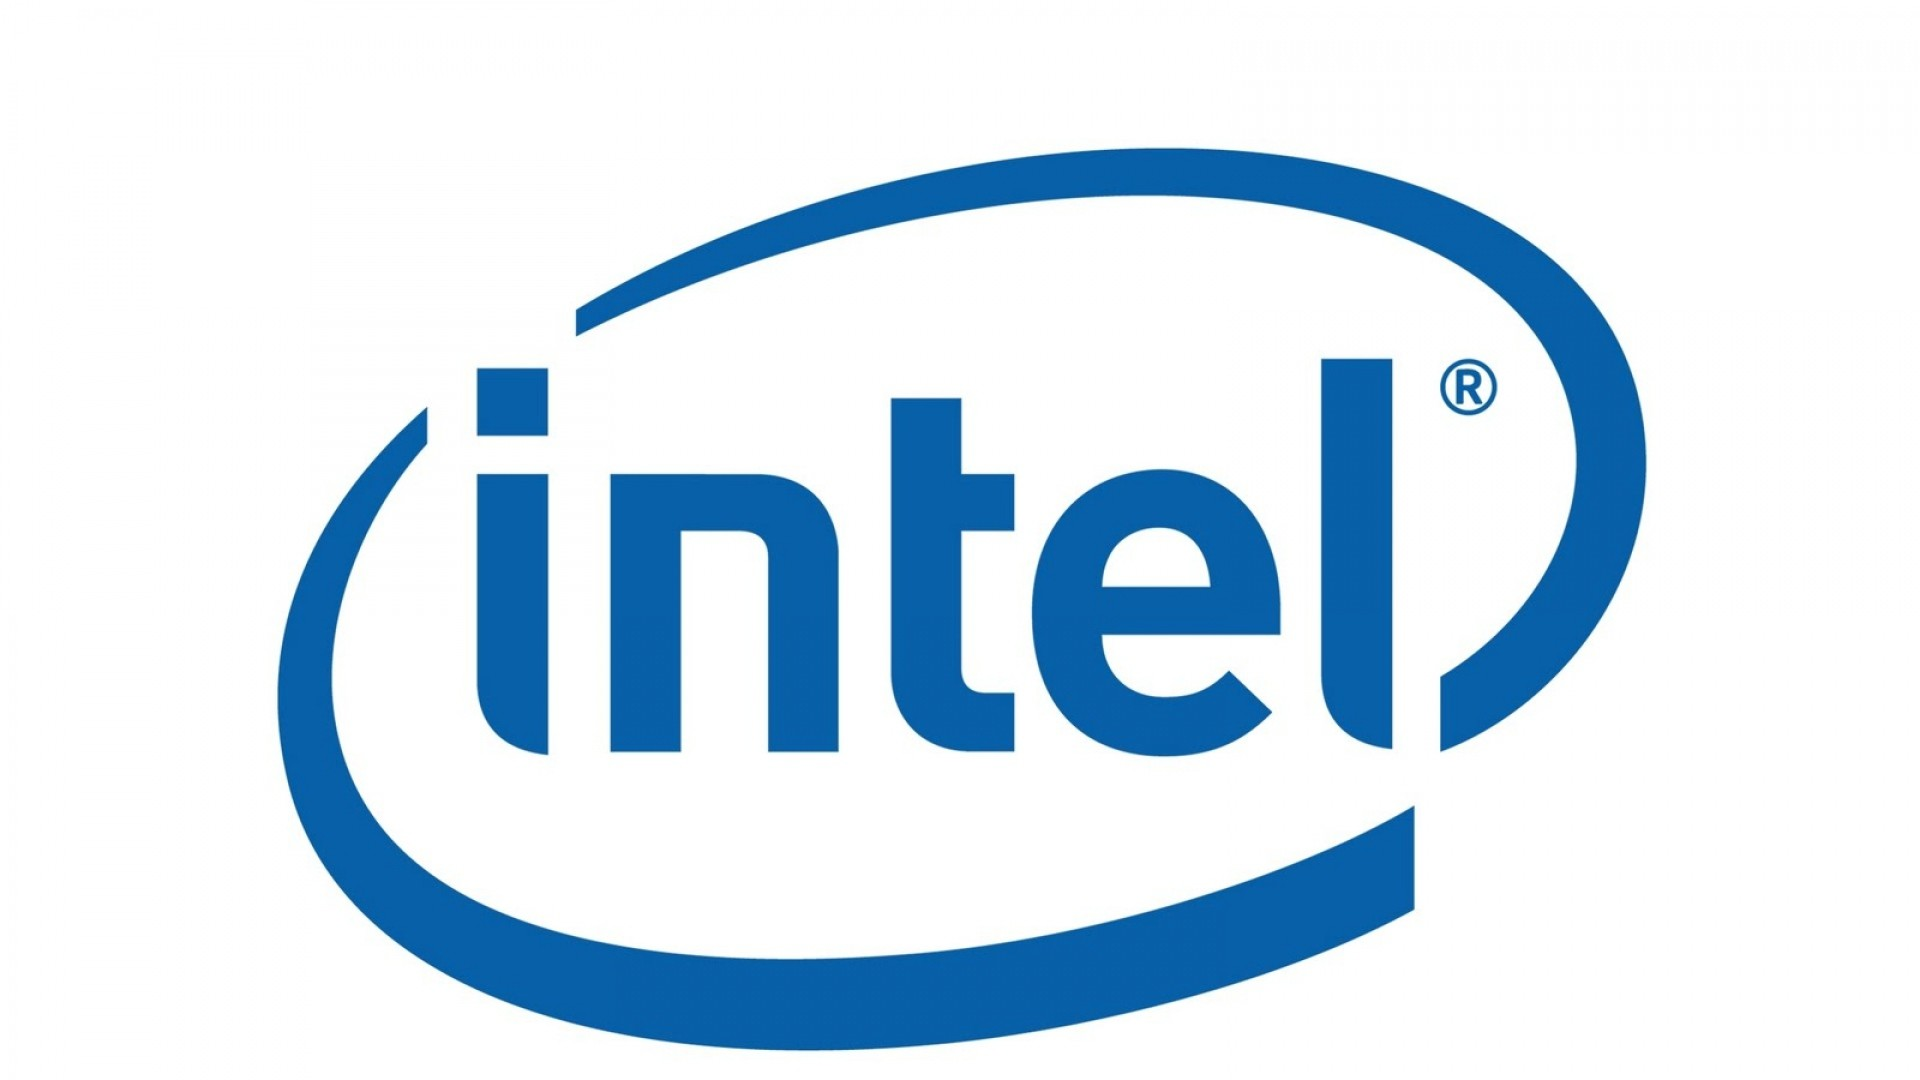 1920x1080 Get the latest intel, logo, symbol news, pictures and videos and learn all  about intel, logo, symbol from wallpapers4u.org, your wallpaper news source.